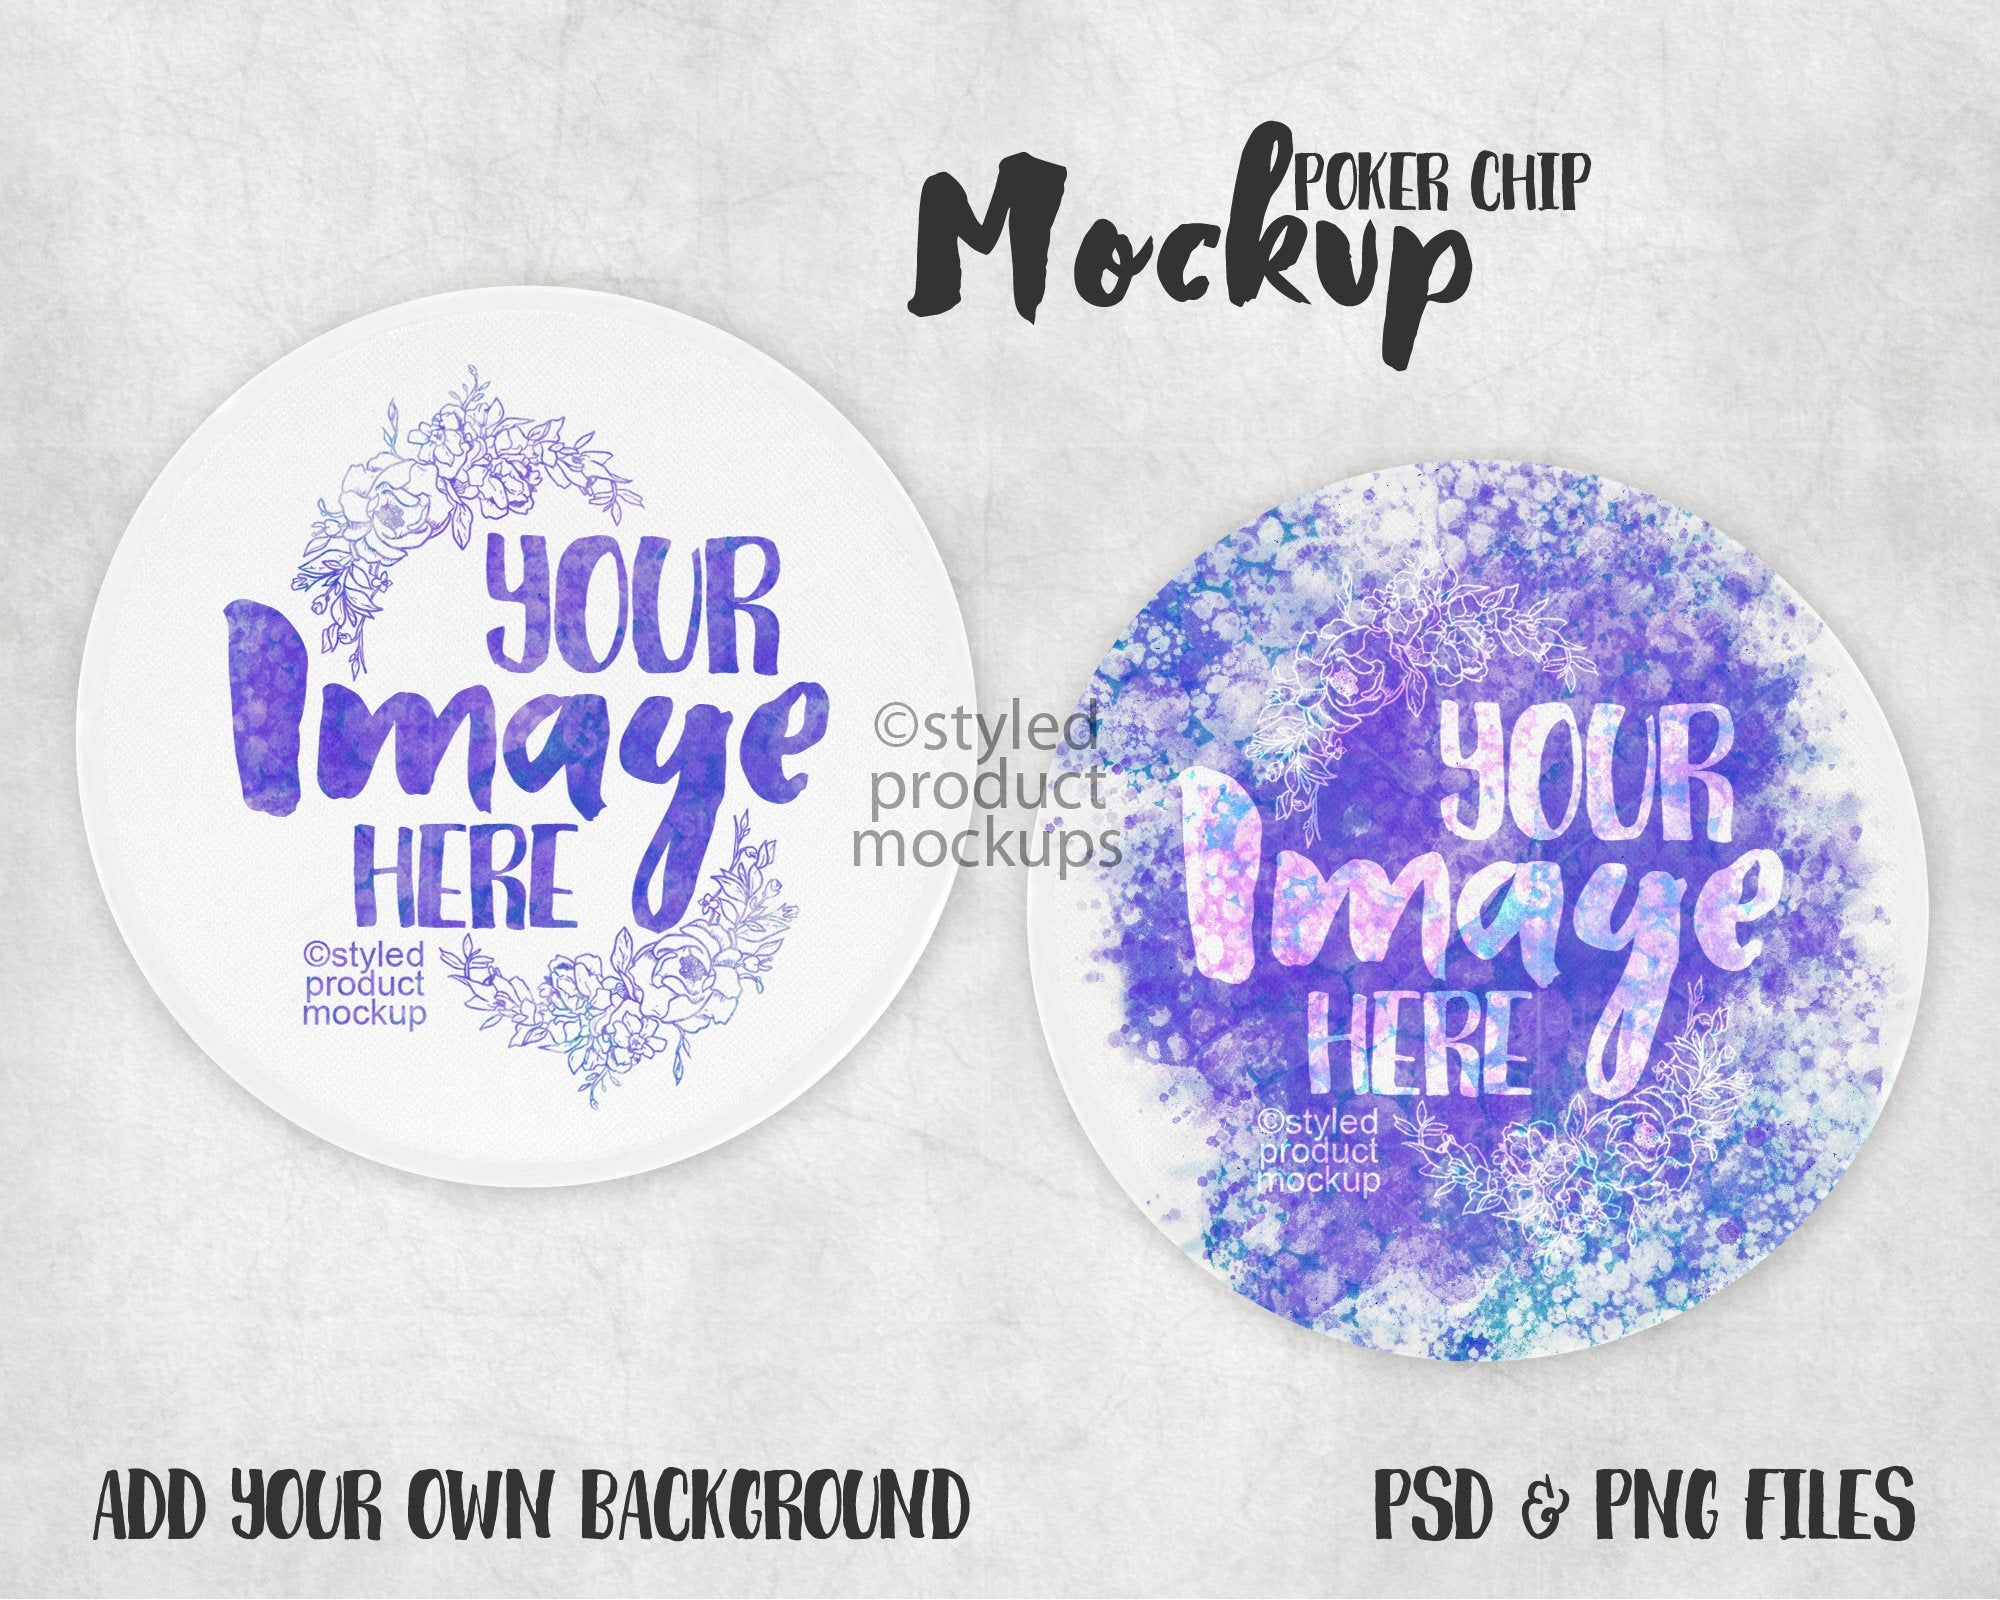 Dye Sublimation Poker Chip Mockup Add Your Own Image And Etsy Dye Sublimation Sublime Car Coasters